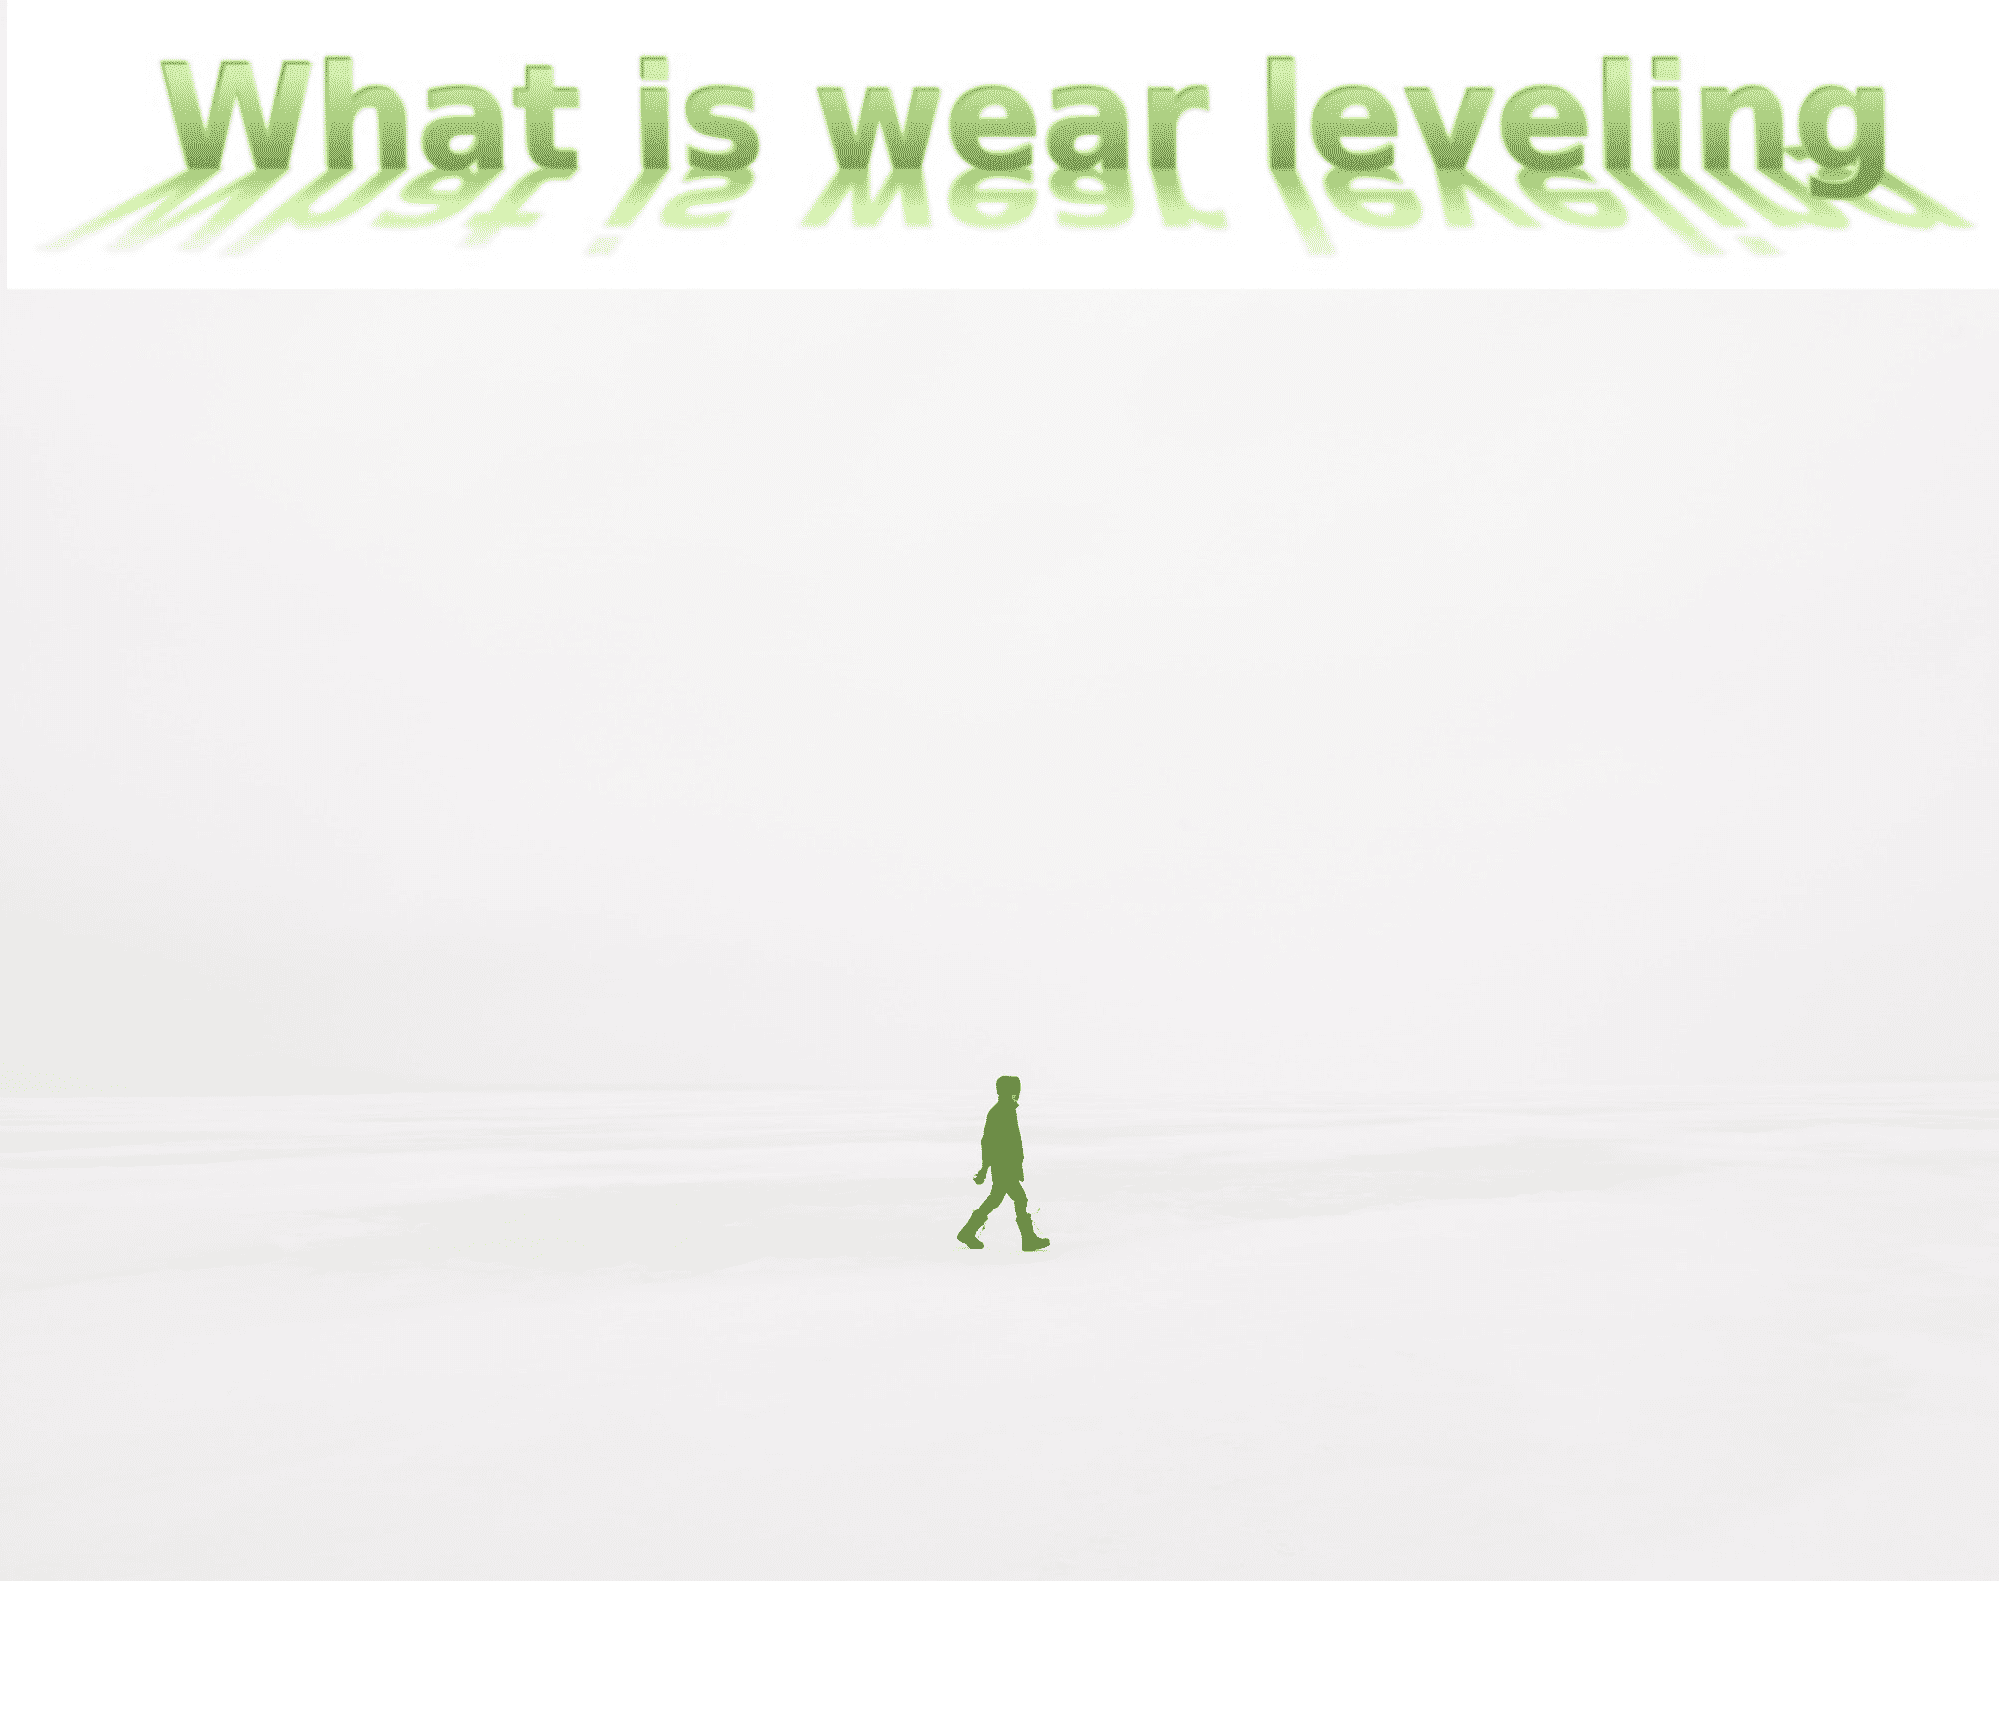 What is wear levelling